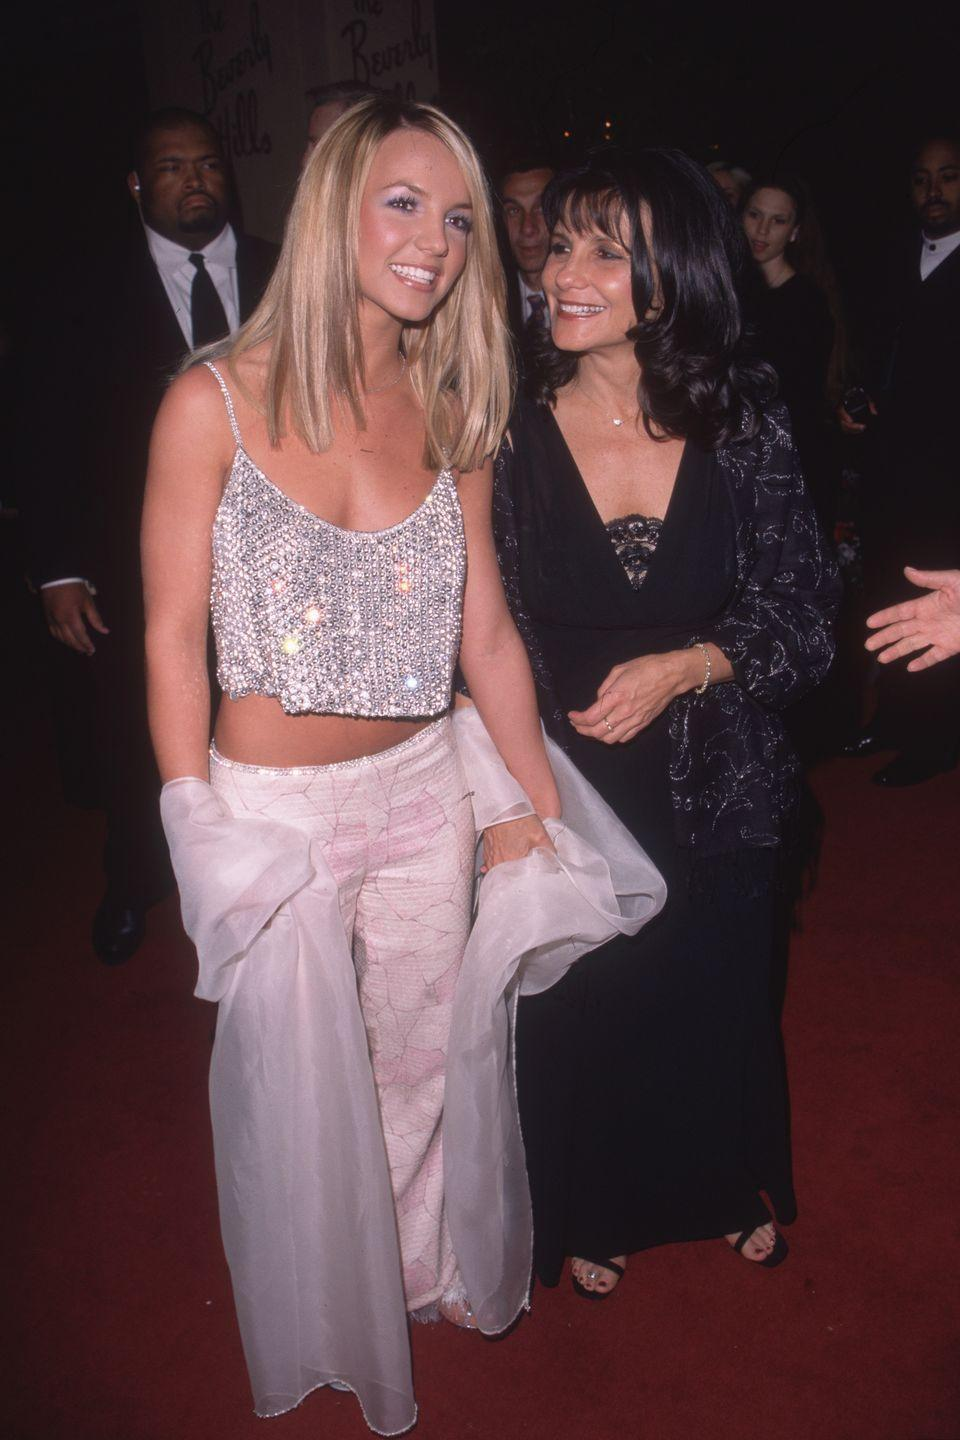 <p>Britney Spears arrives at the Arista Records pre-Grammy Awards party at the Beverly Hills Hotel in California, with her mom, Lynne Spears. </p>